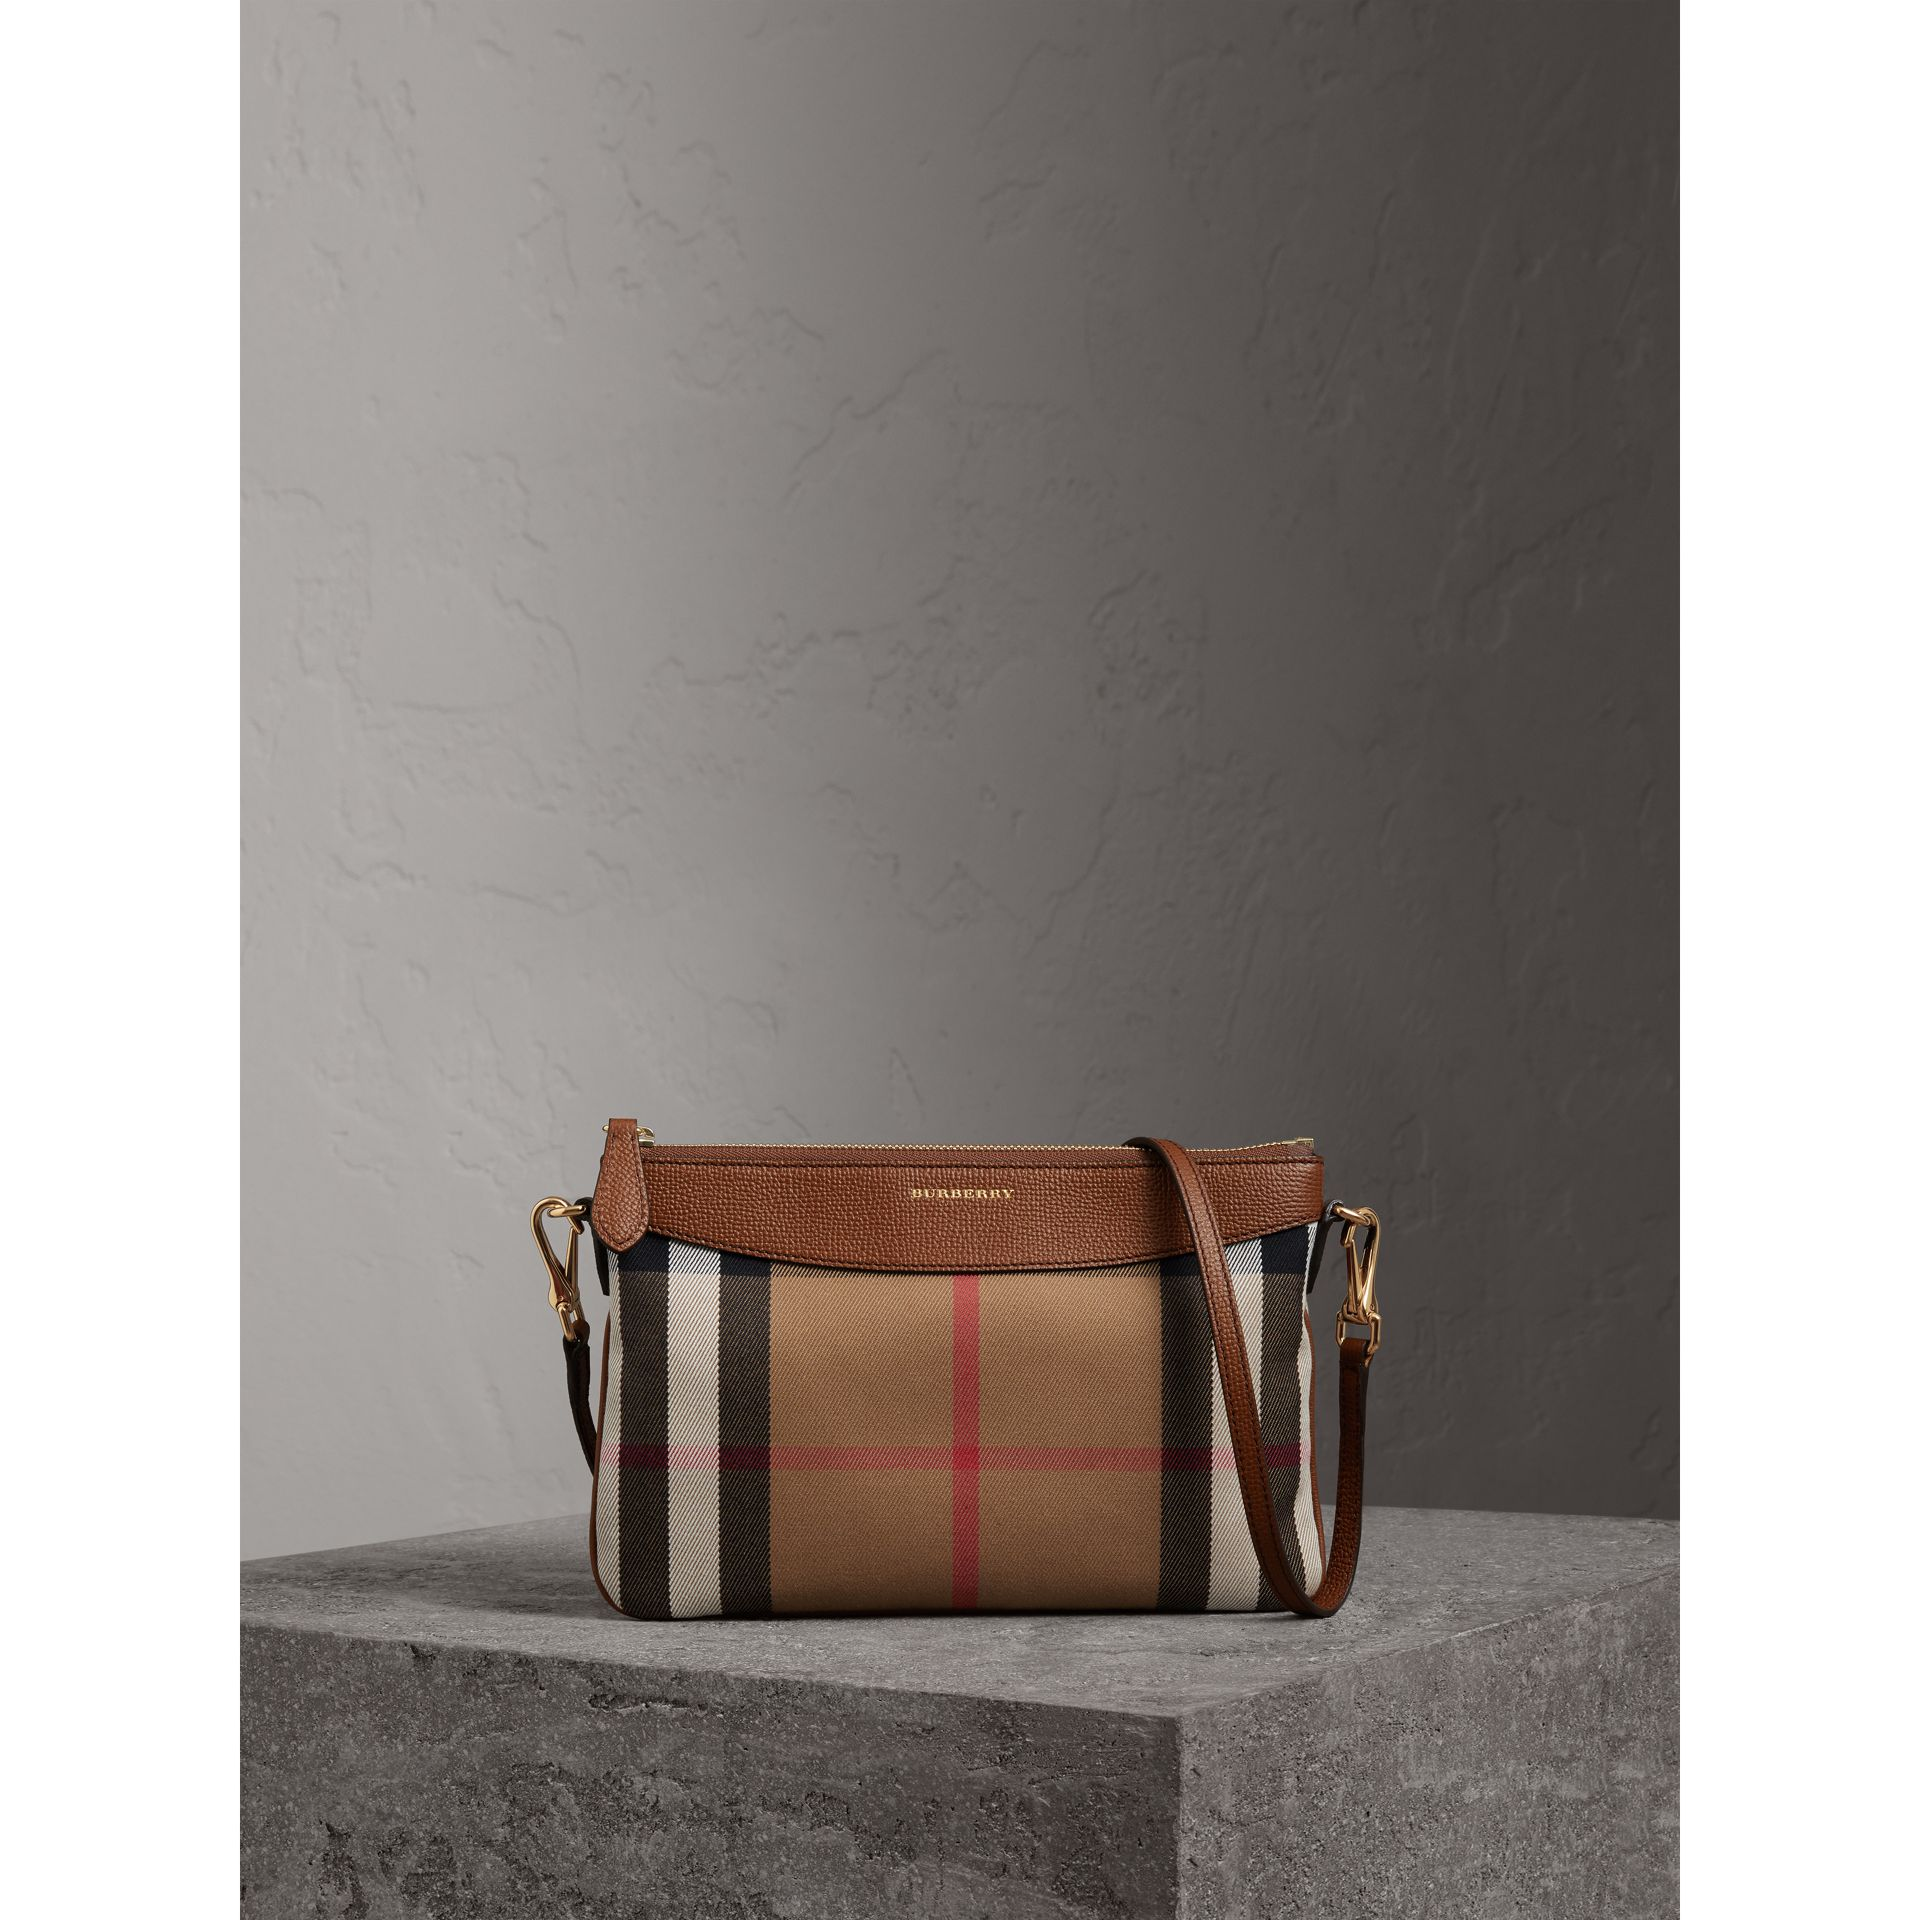 House Check and Leather Clutch Bag in Tan - Women | Burberry Australia - gallery image 0